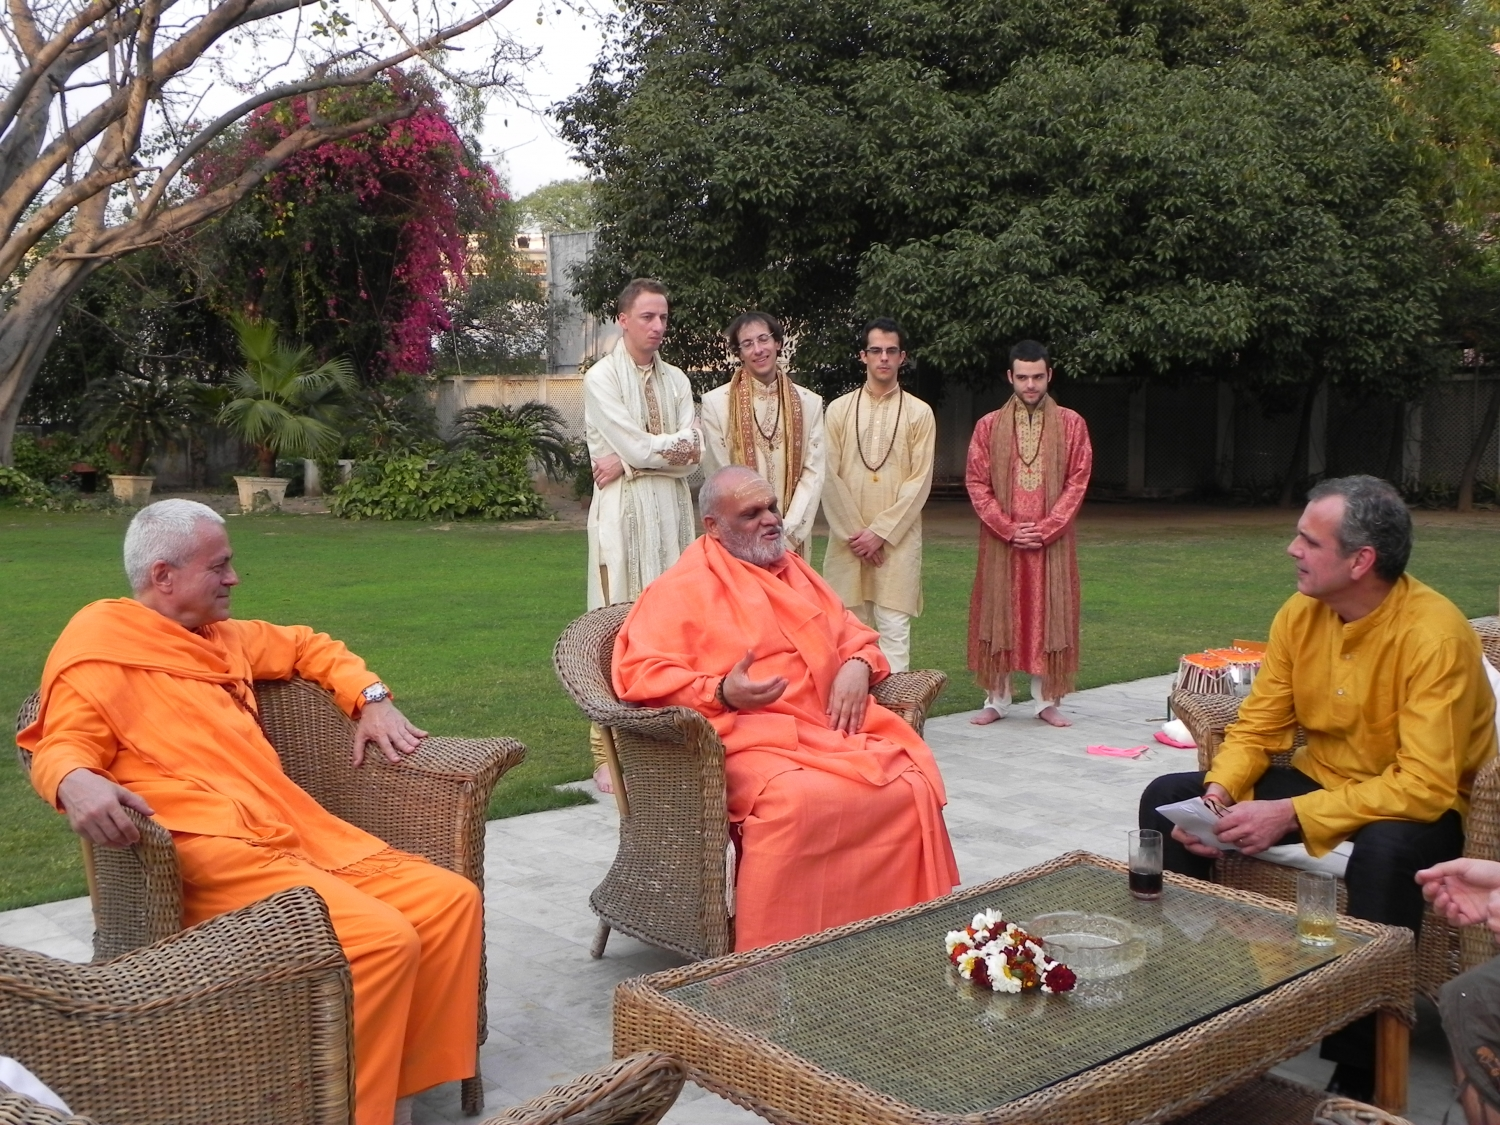 Reception of the Great Yoga Masters of India at the Embassy of Portugal - Dillí, India - 2011, March